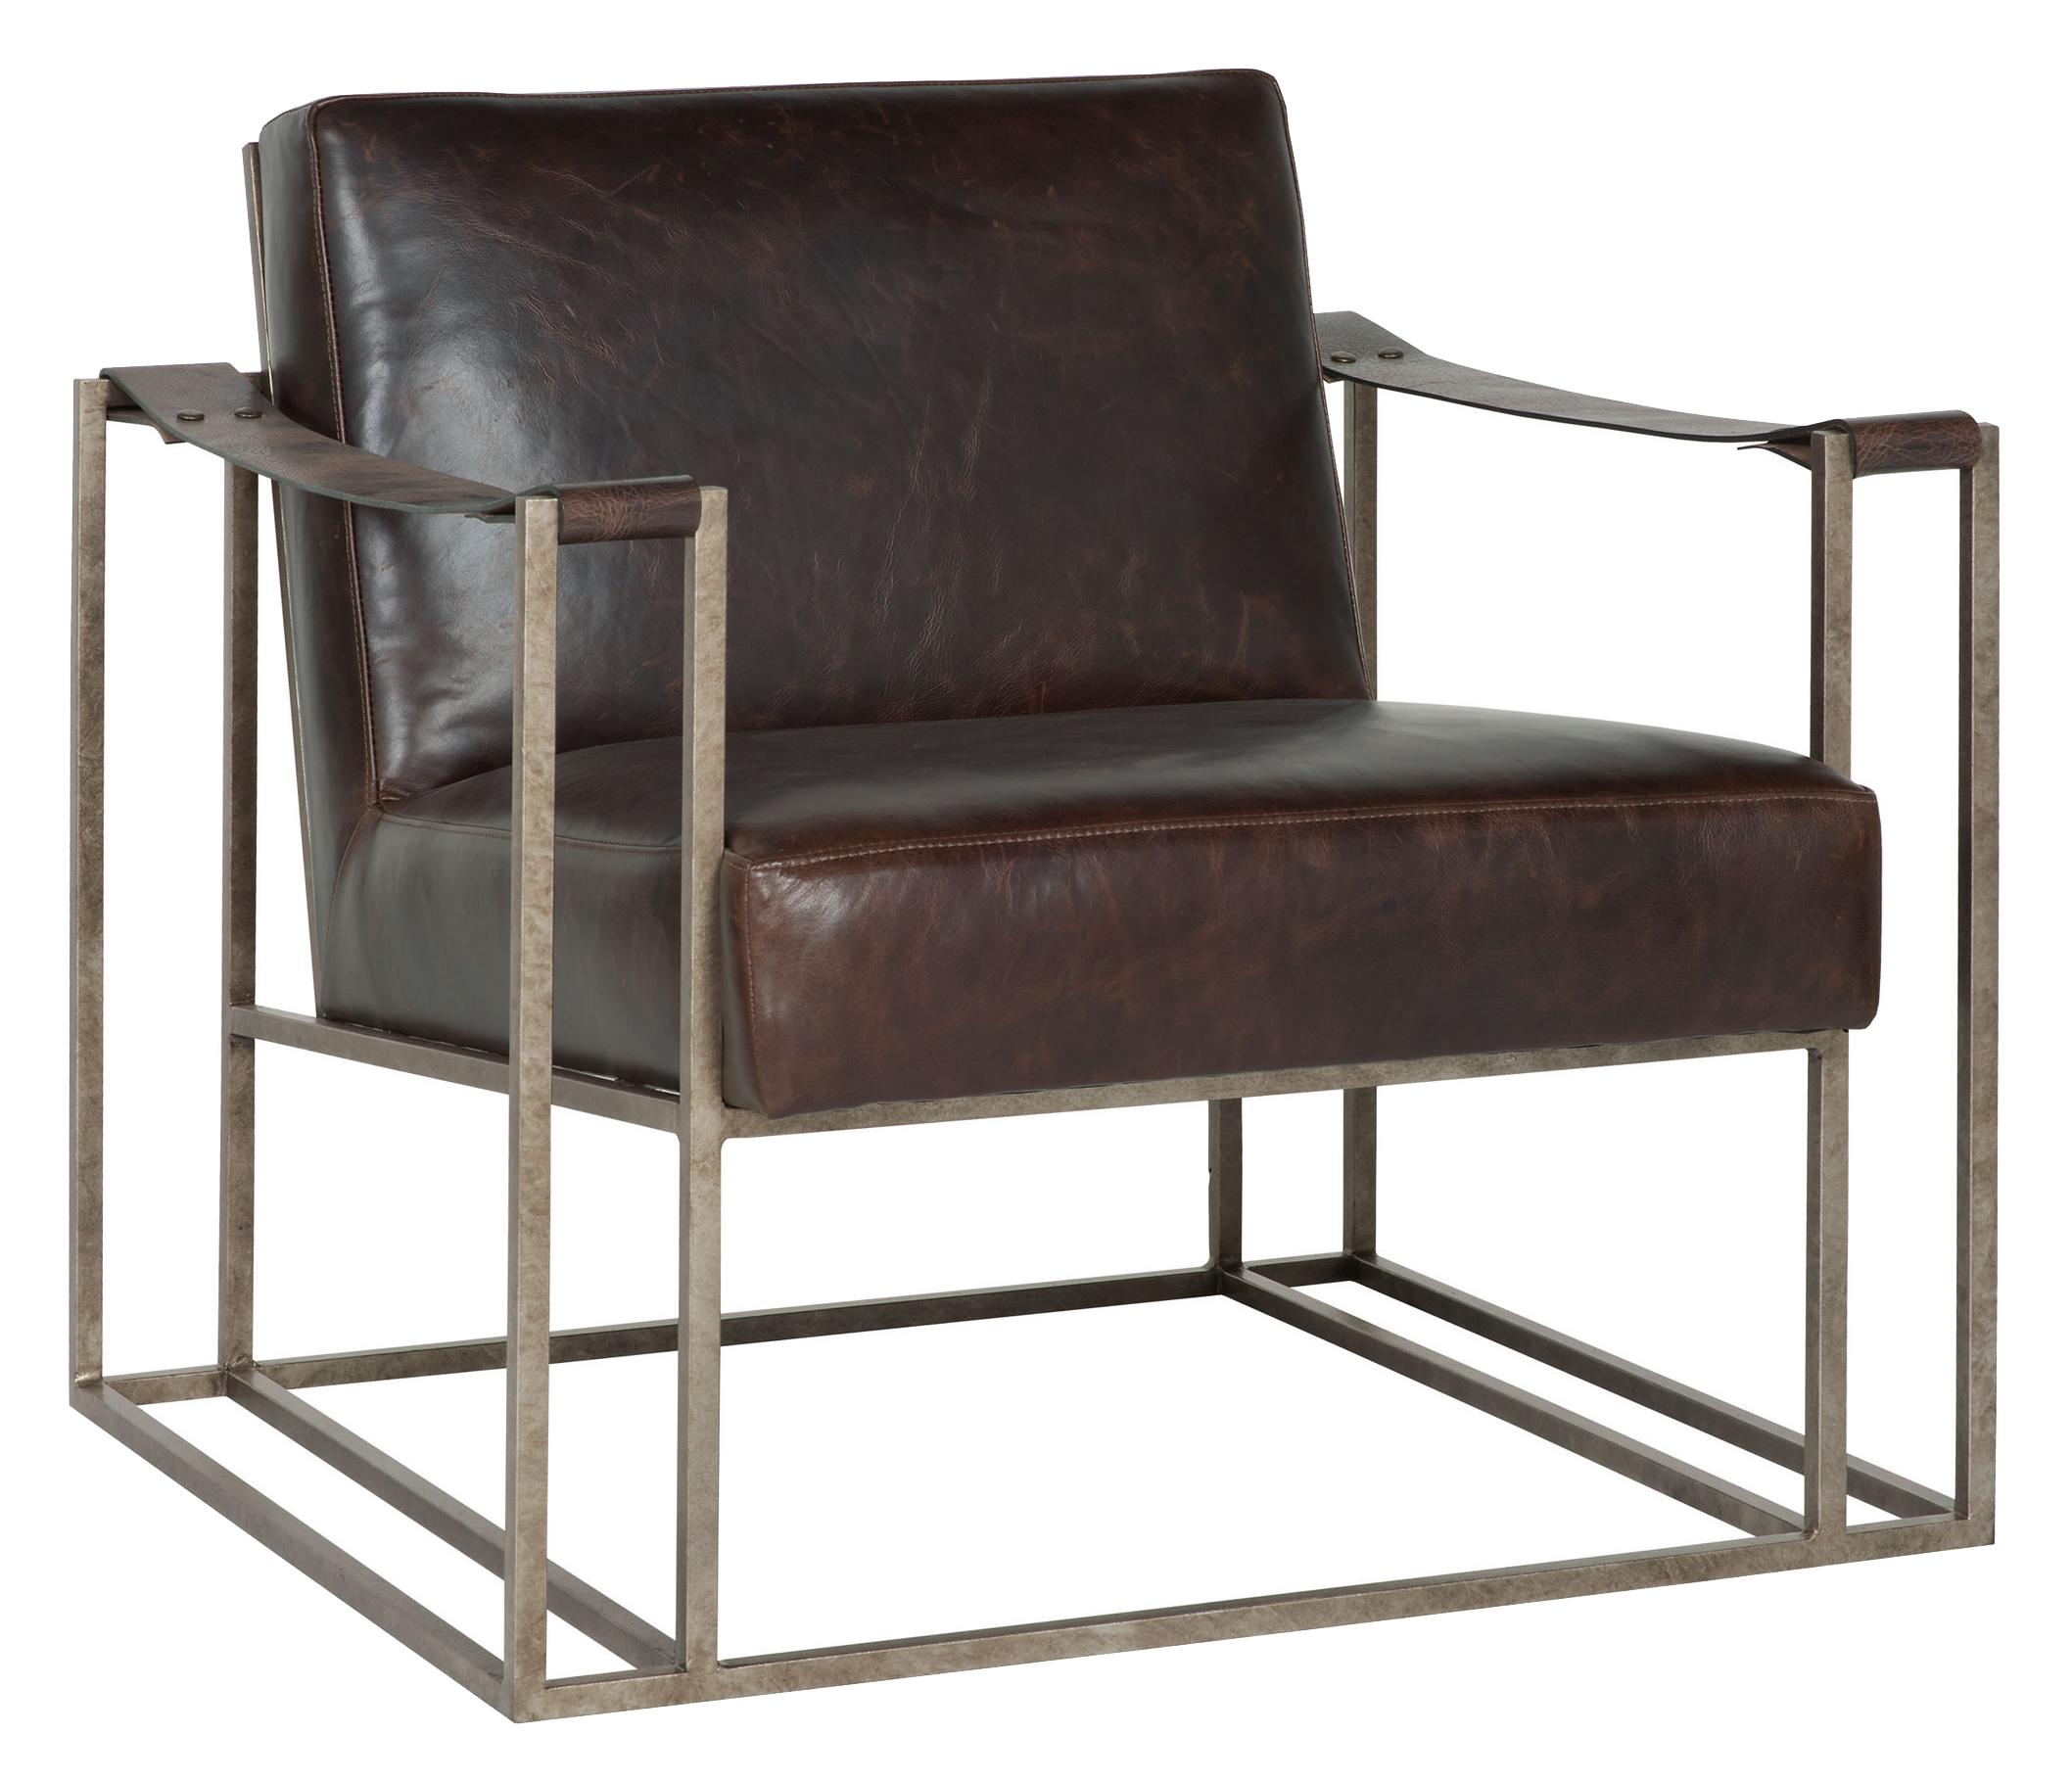 Bernhardt Leather Chair Bernhardt Dekker Industrial Leather Chair With Metal Arms